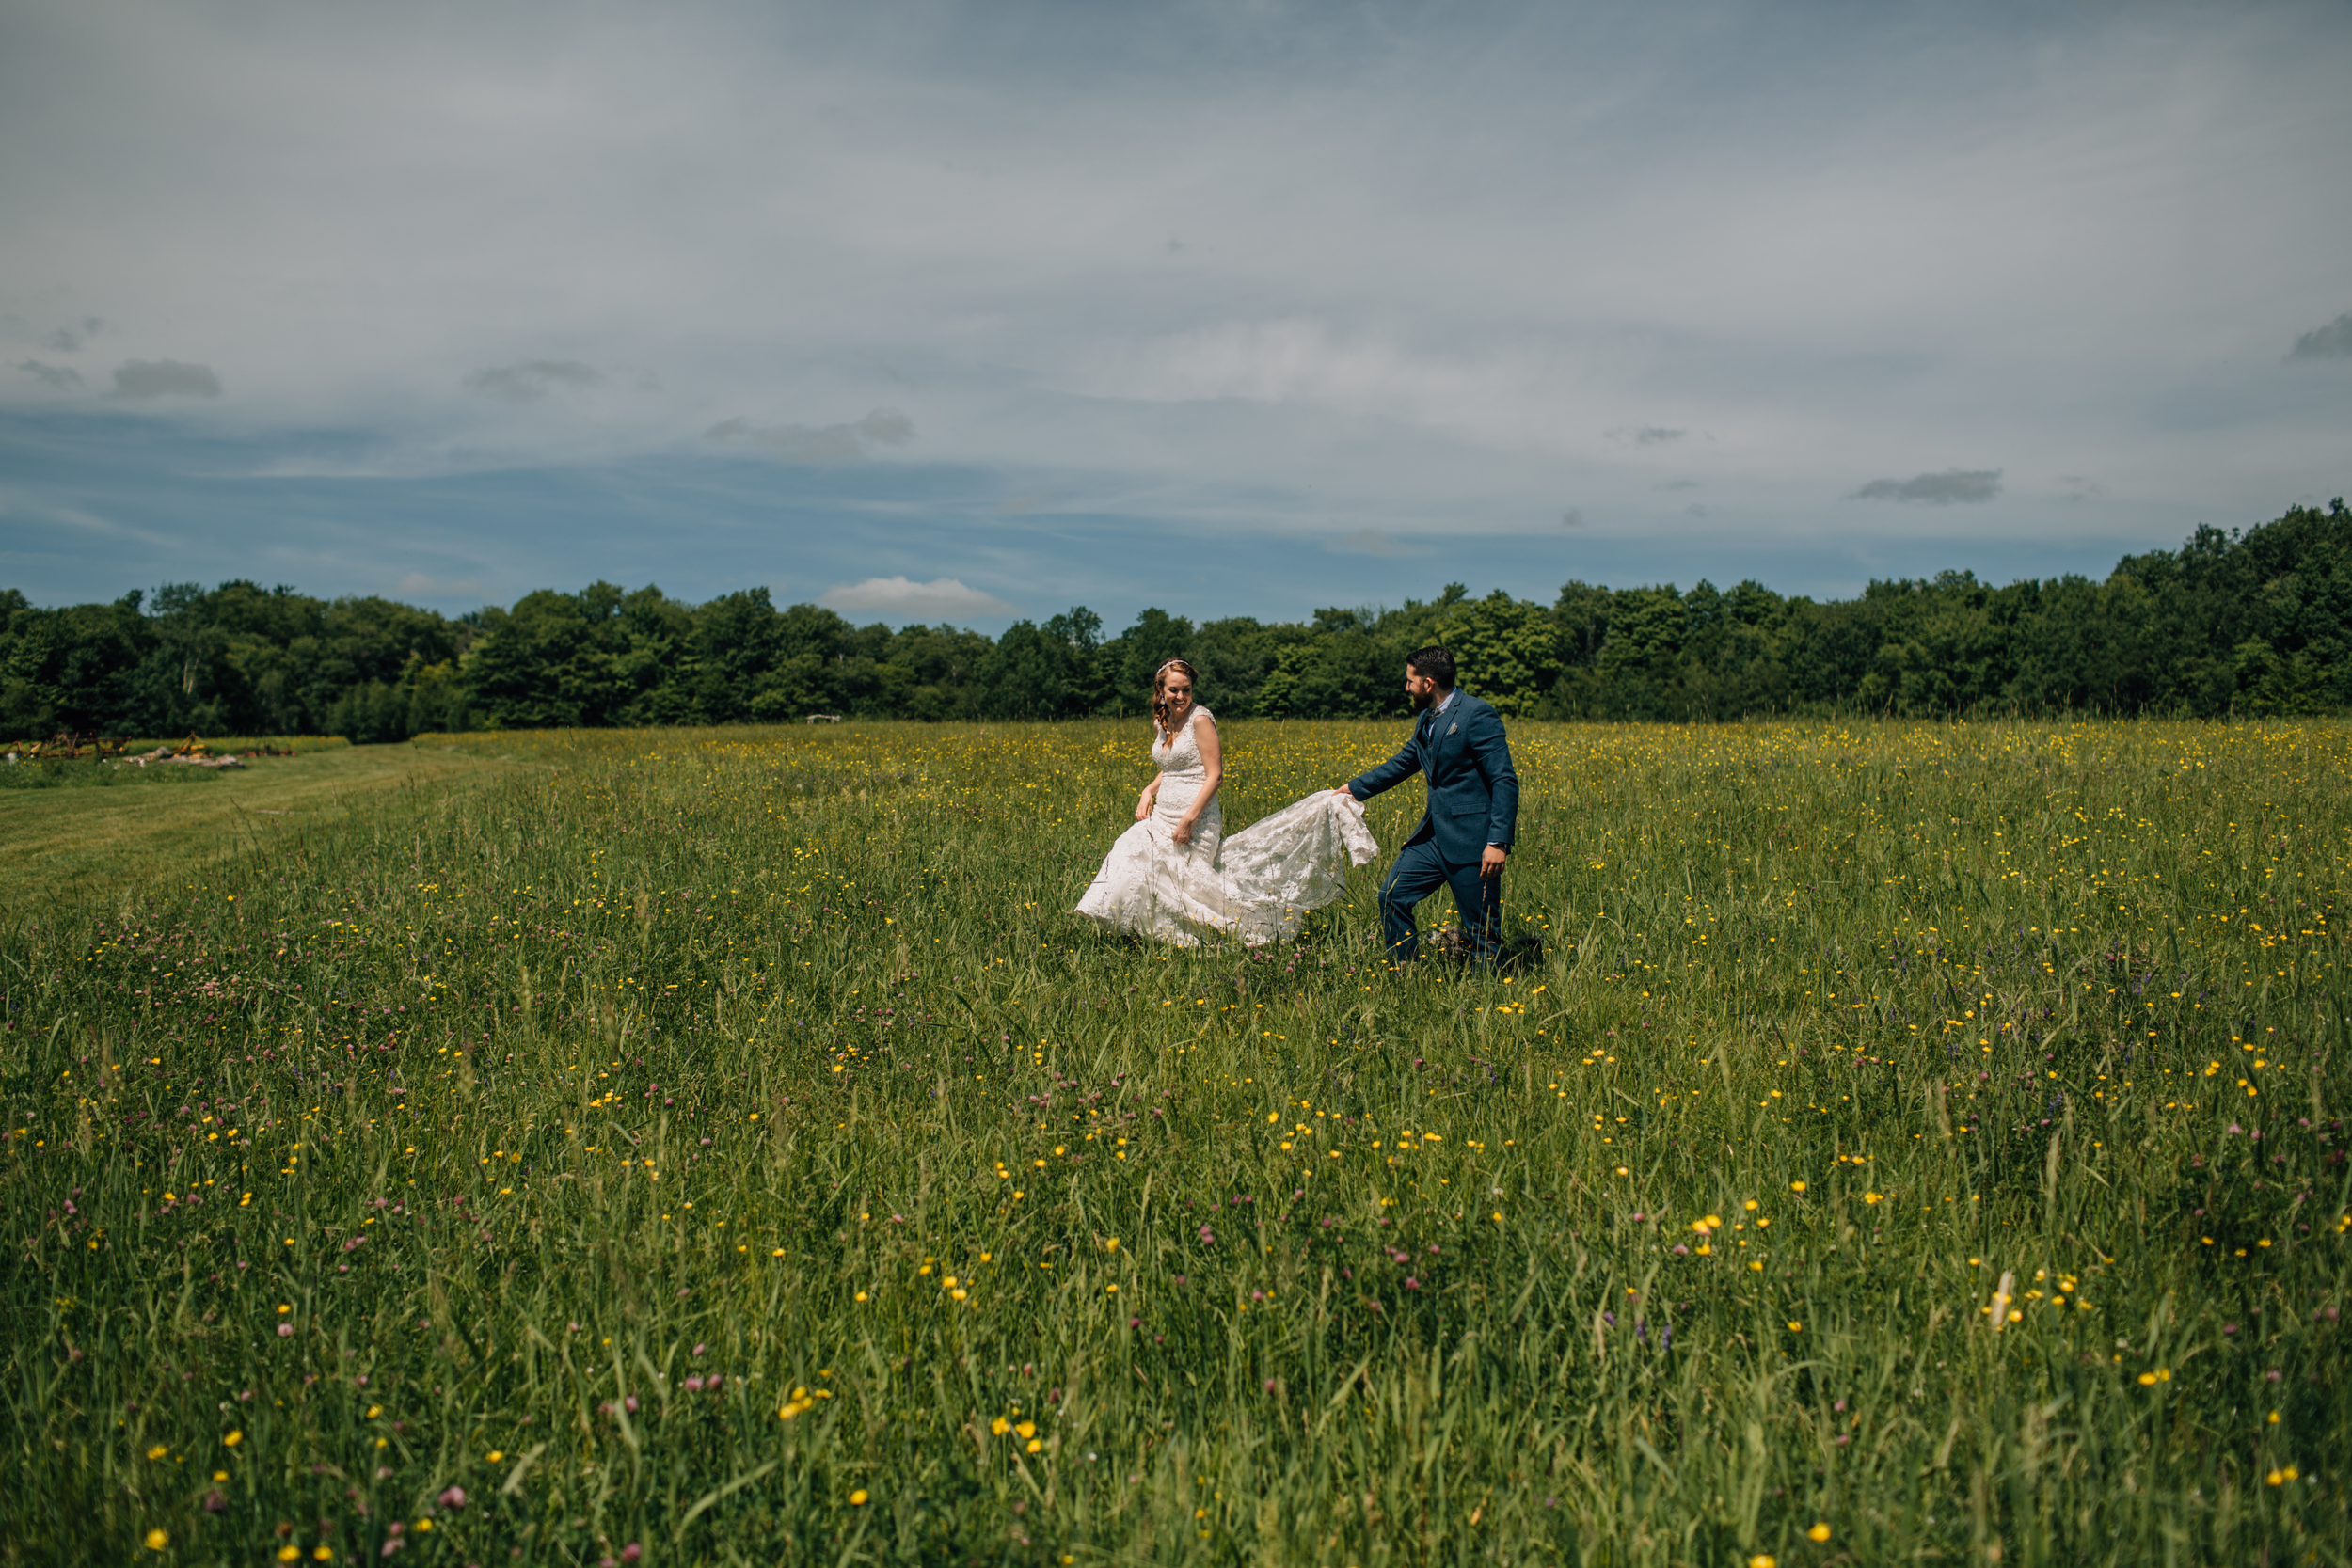 KELLIandBRADweddingJUNE2015 - portraits (90 of 142).jpg